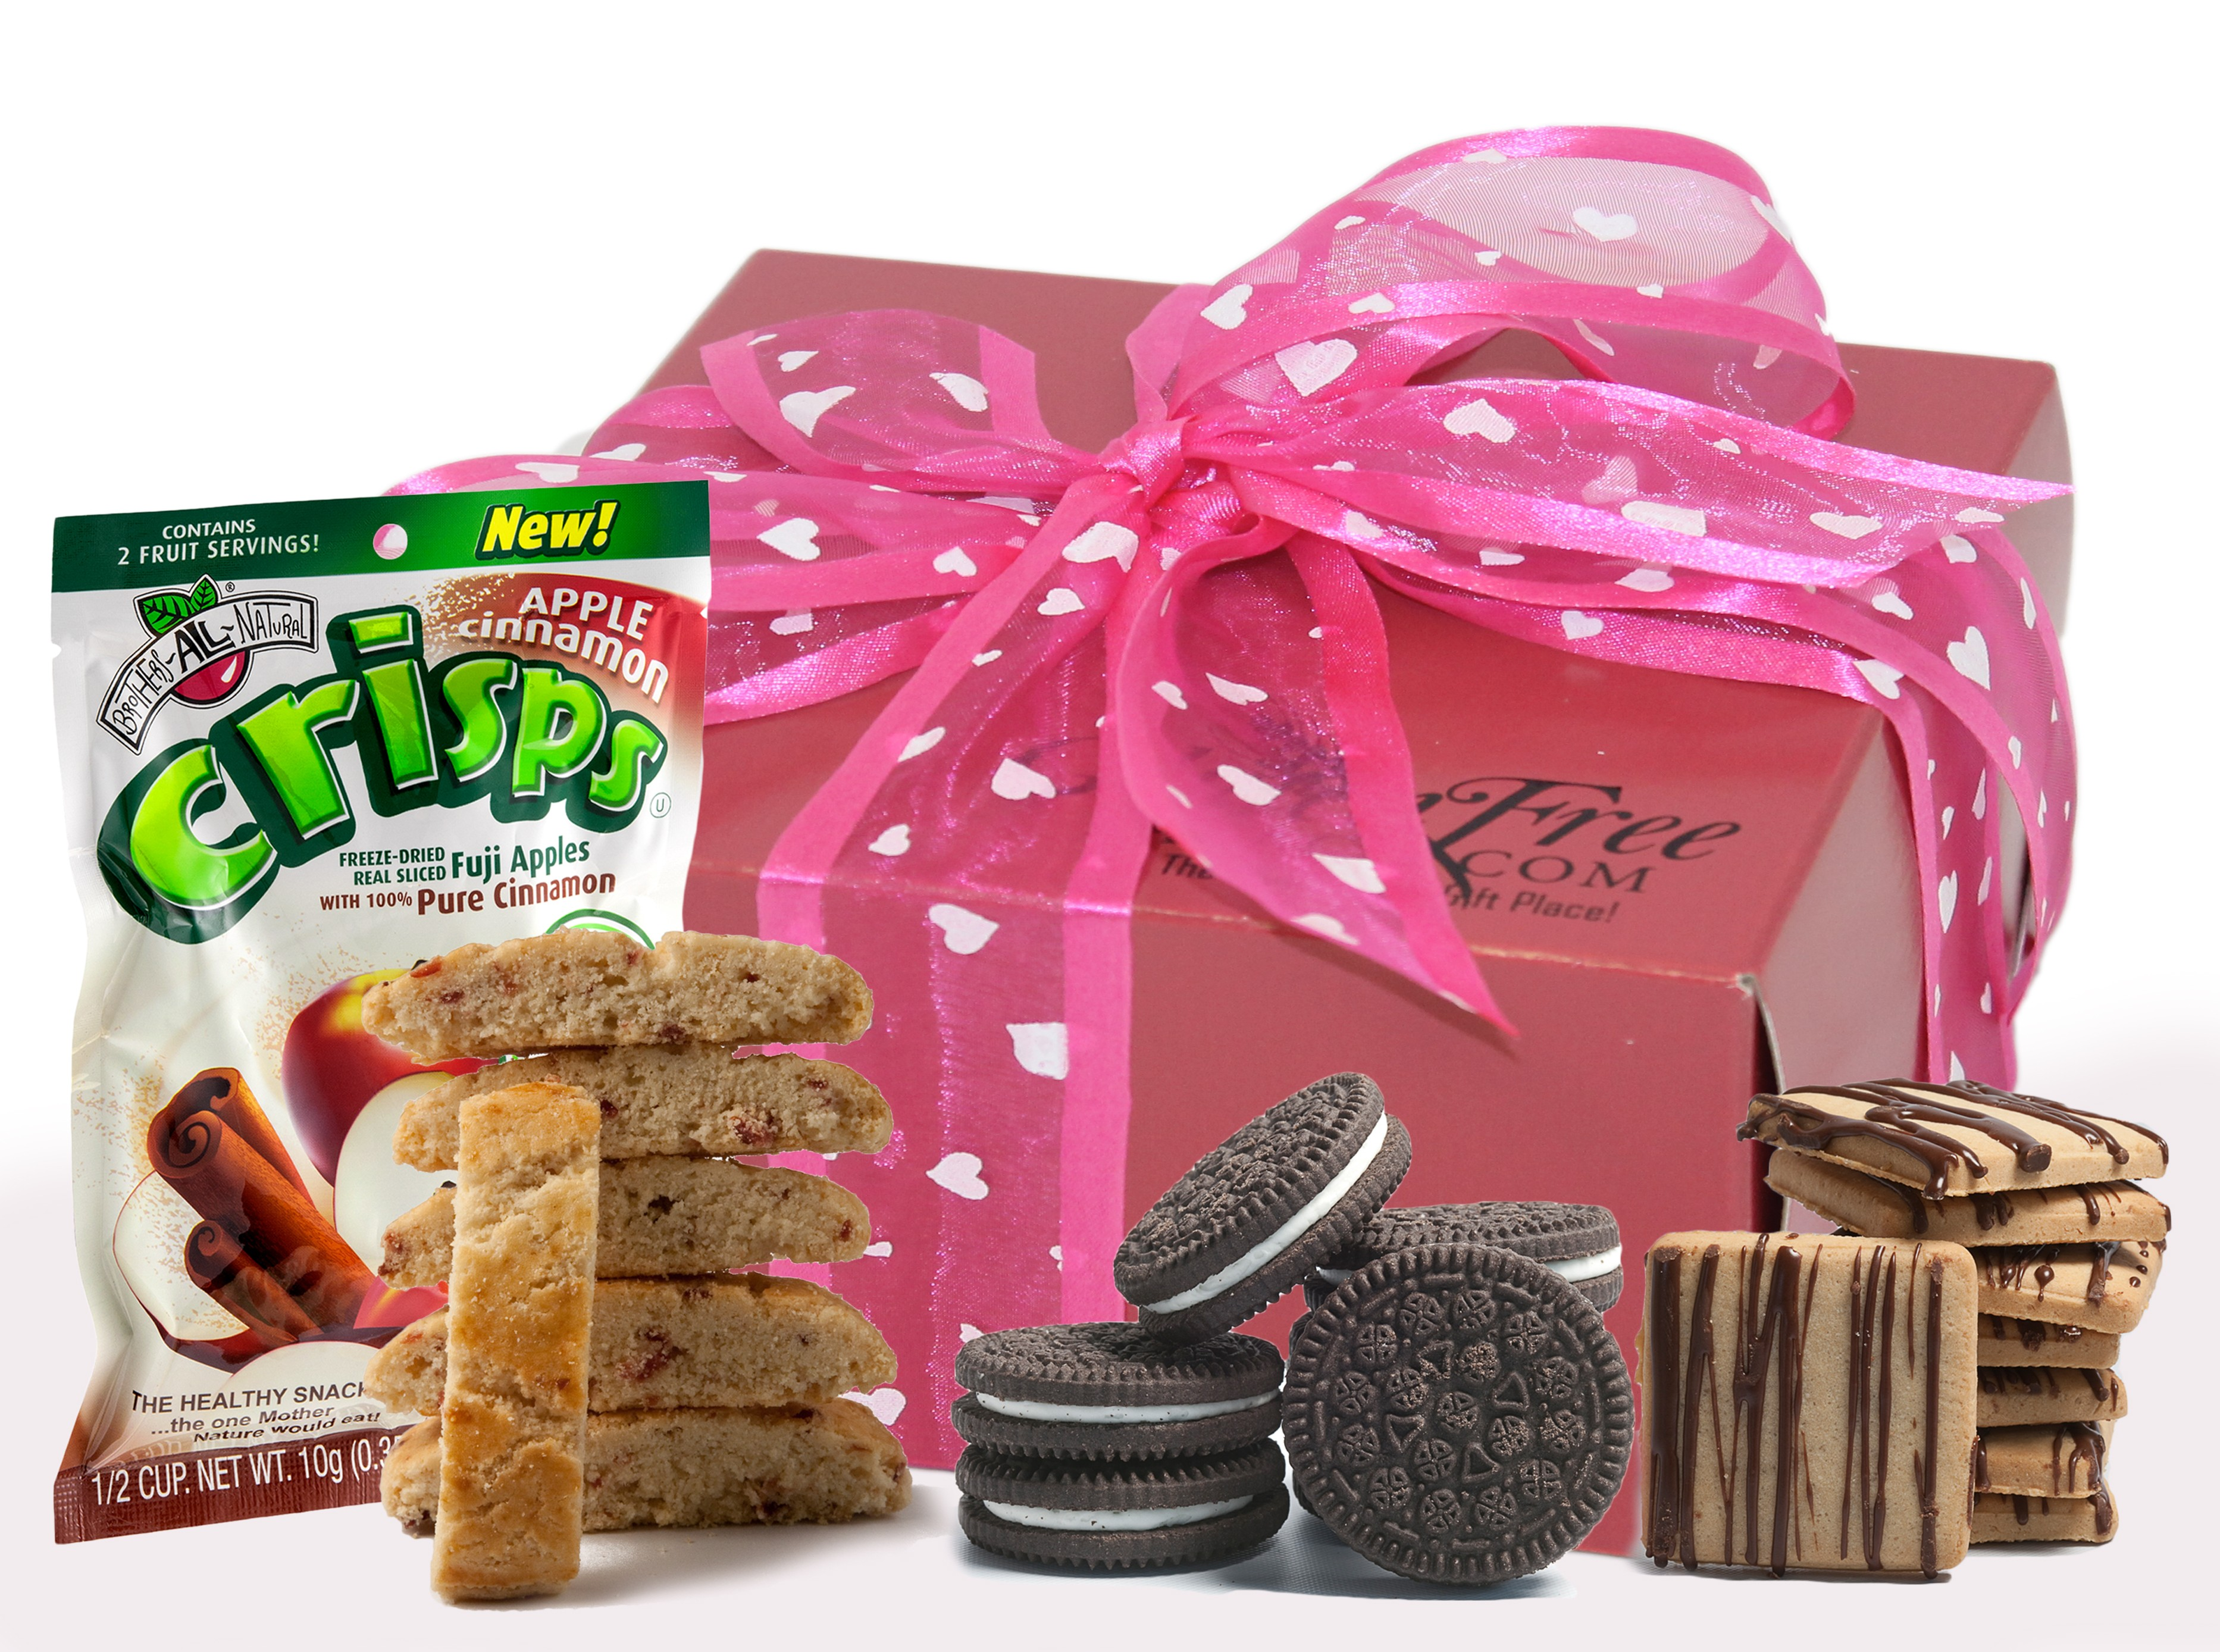 My Sweetheart! Gluten Free Gift Box